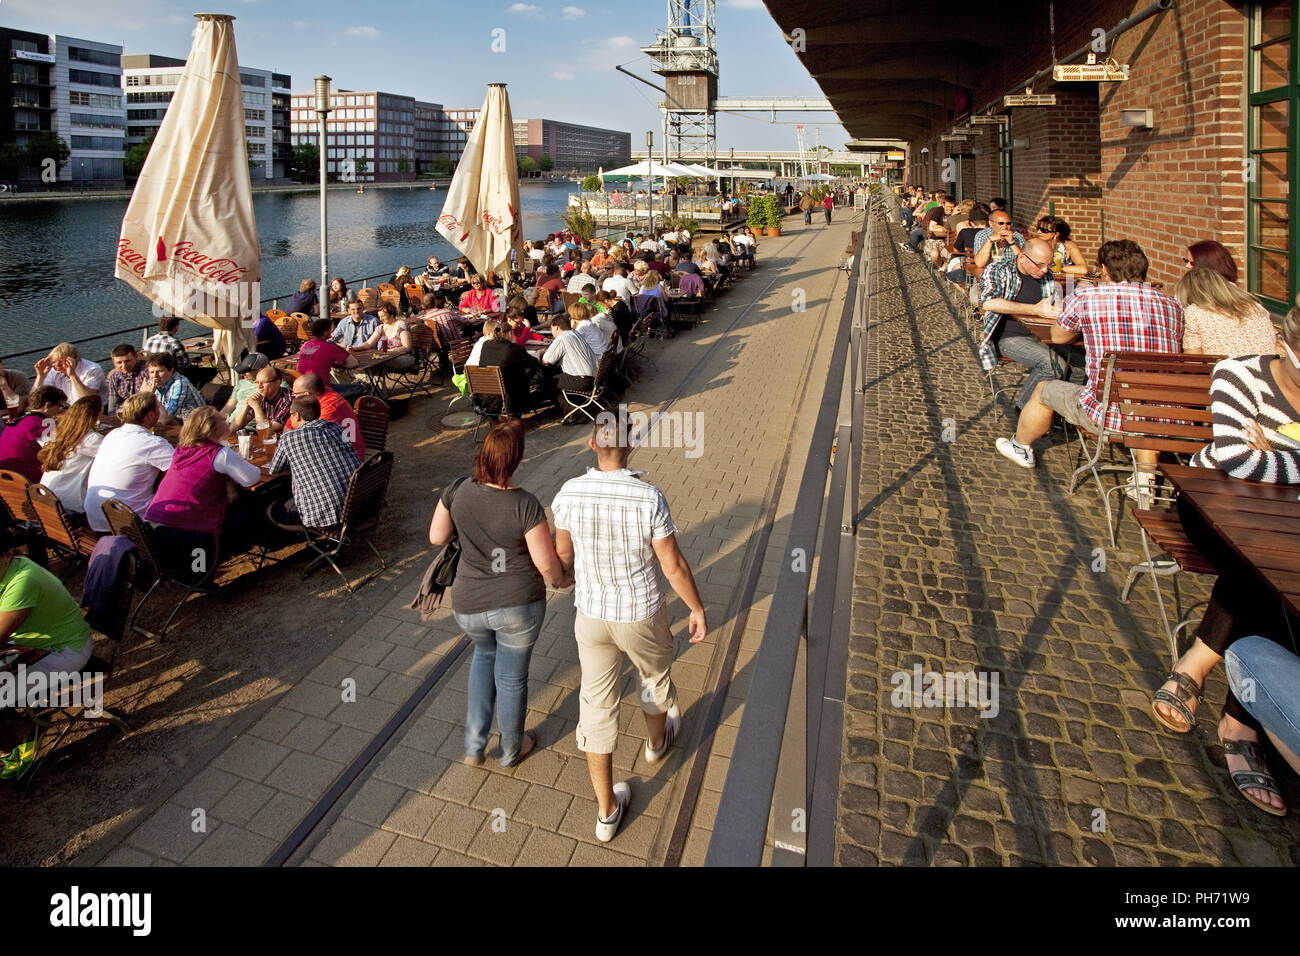 People, gastronomy, Duisburg Inner Harbour,Germany - Stock Image